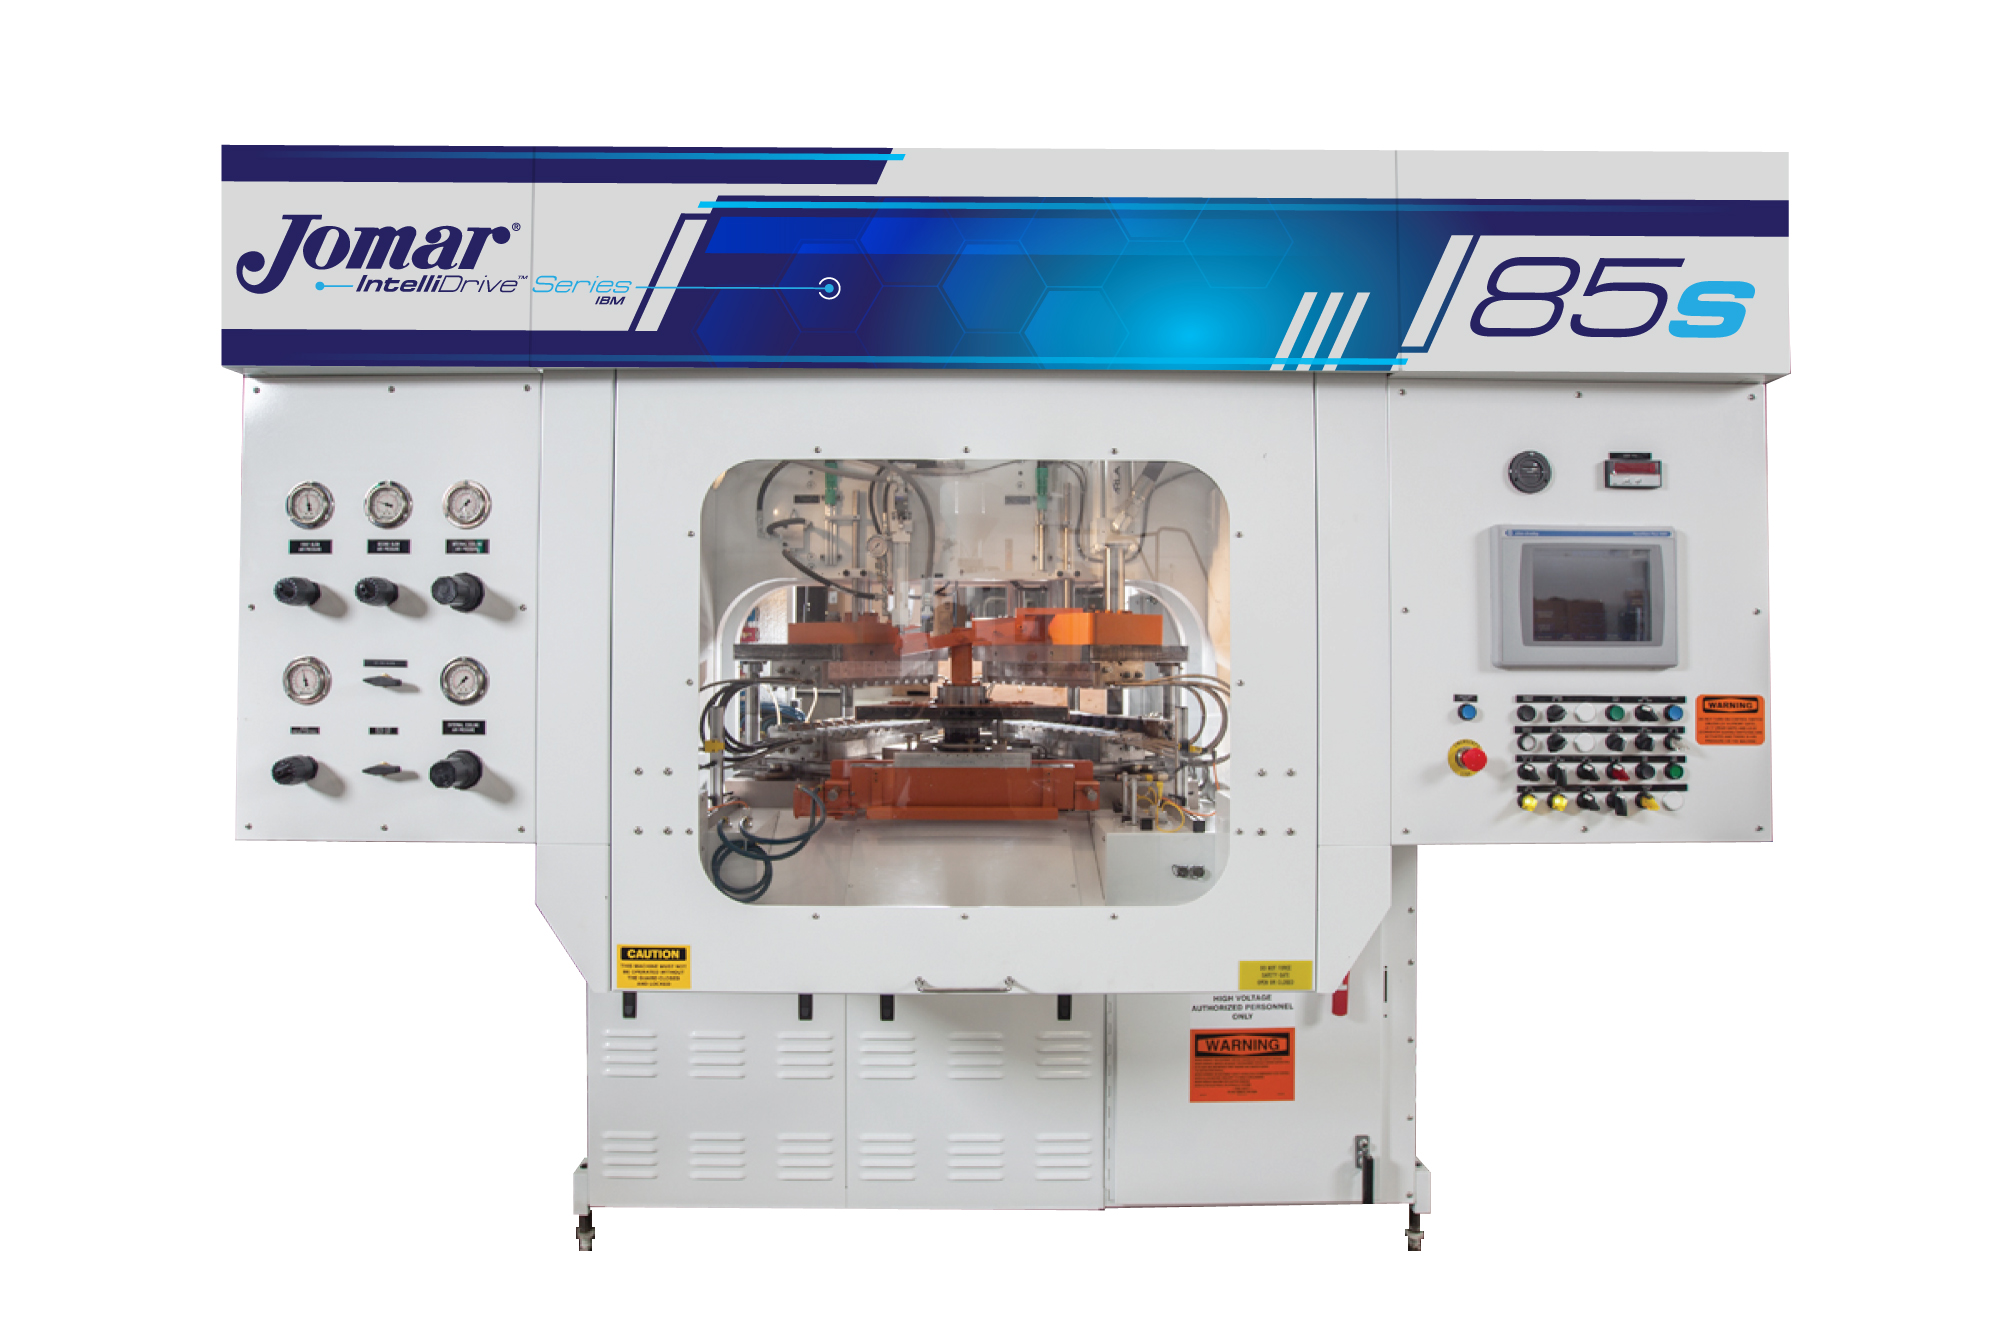 Jomar IntelliDrive injection blow molding machine